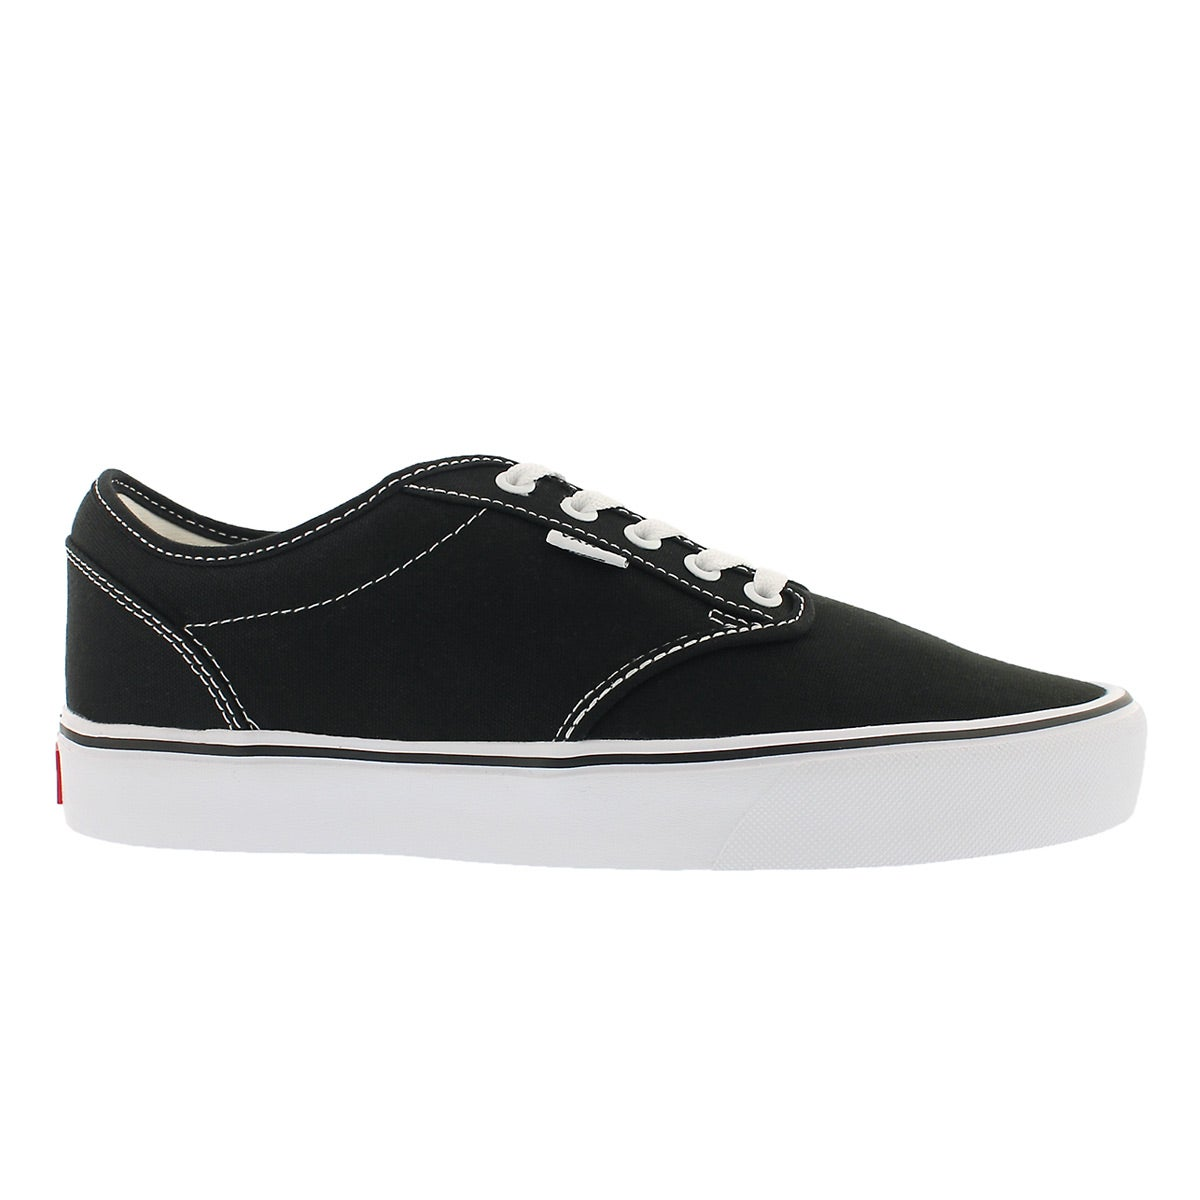 Mns Atwood Lite black lace up sneaker